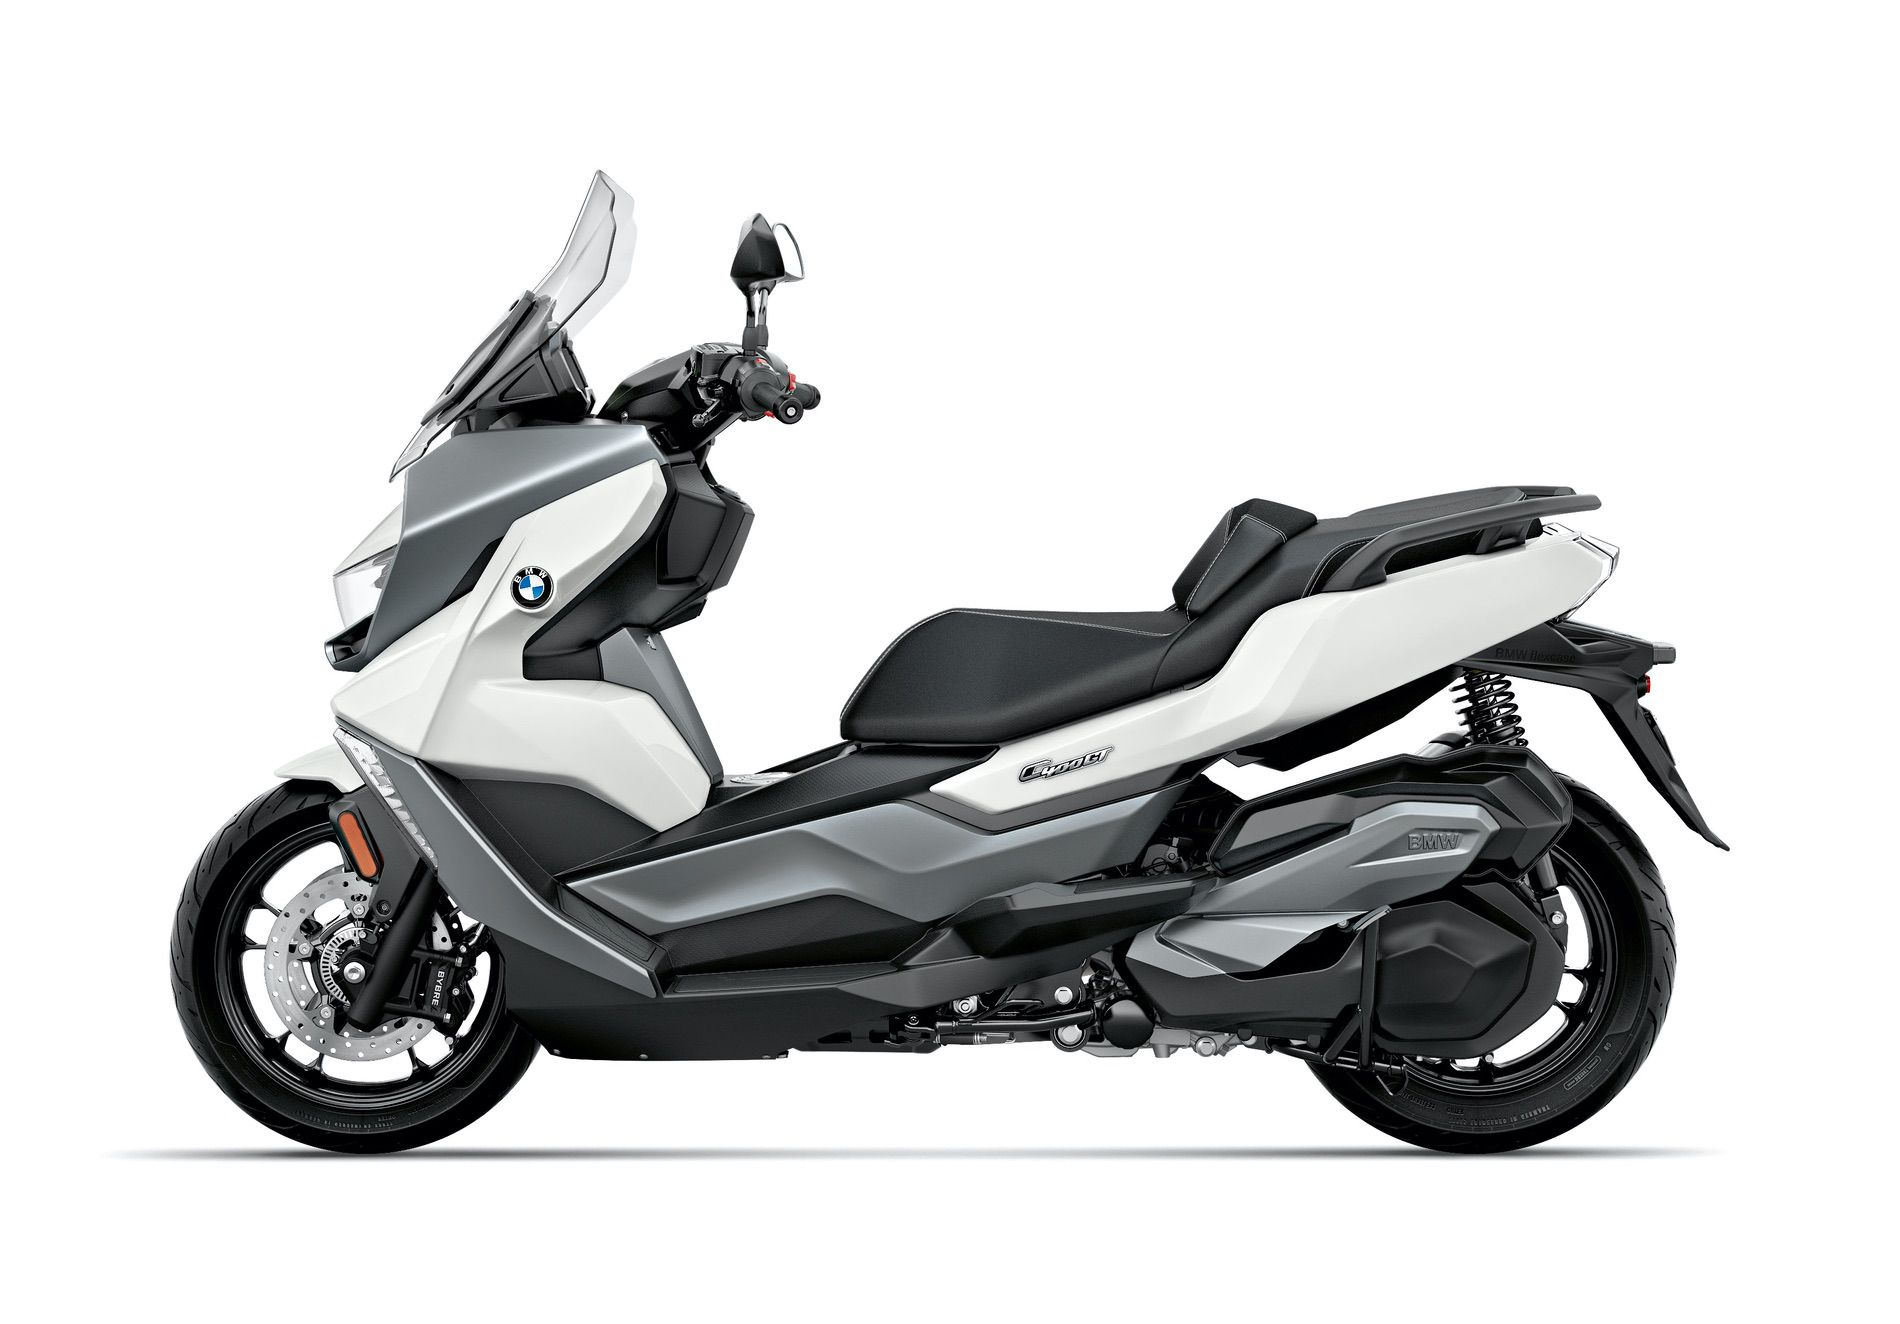 World Debut The New Bmw C 400 Gt